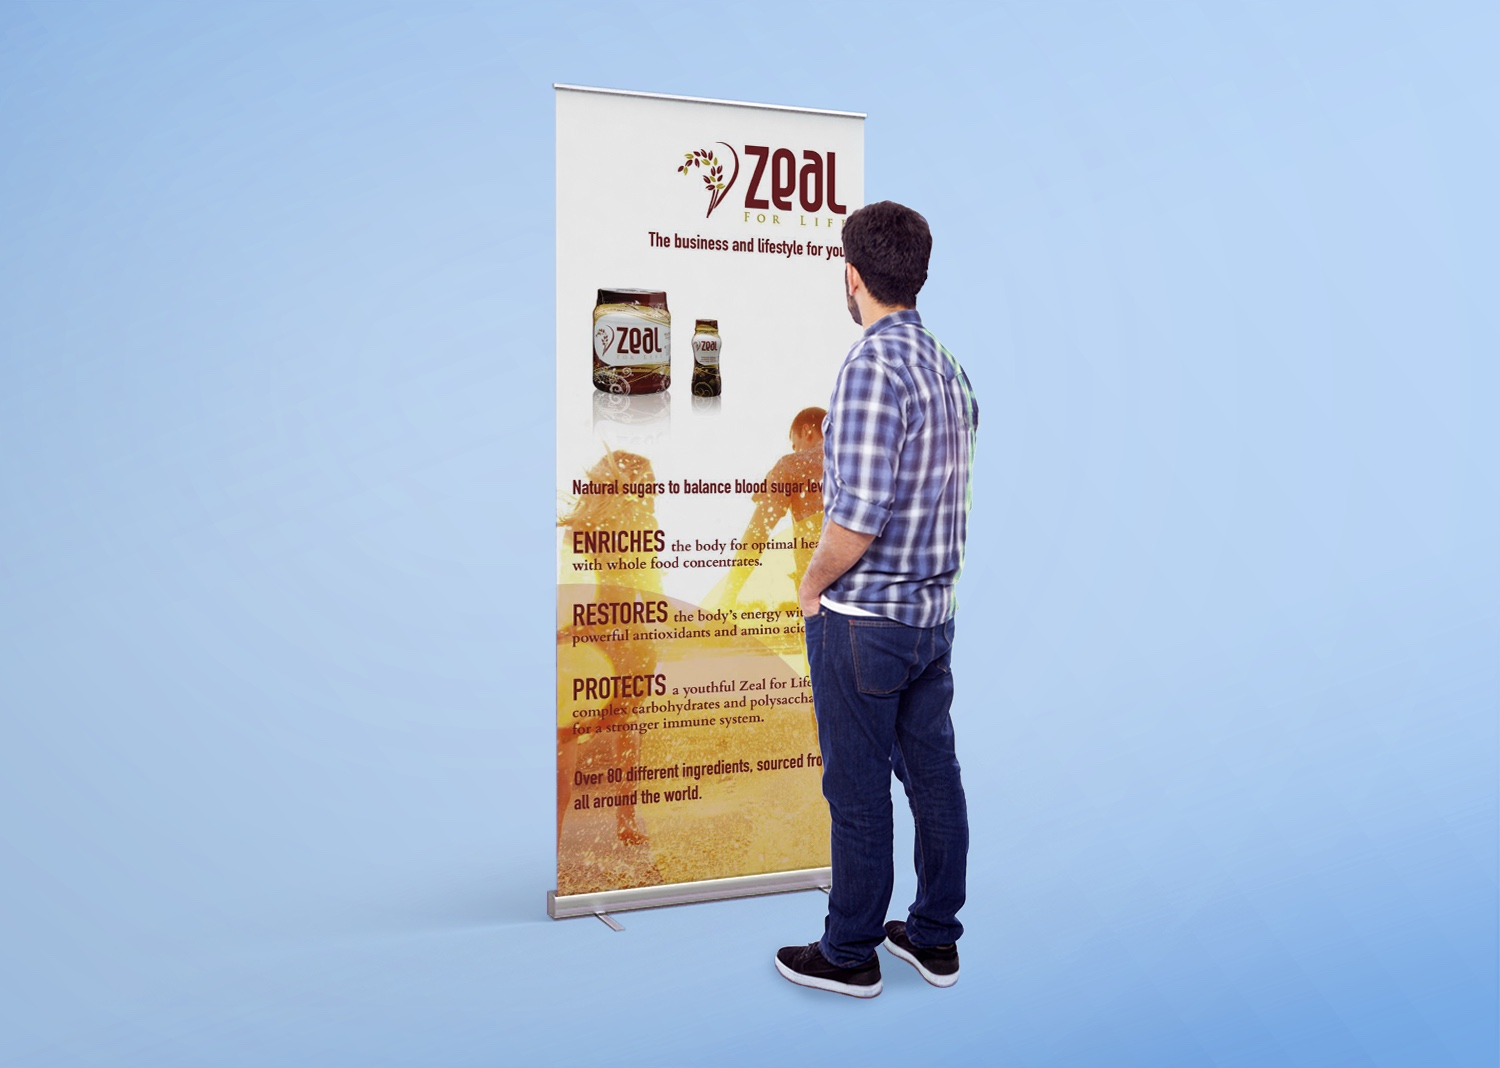 Roll Up! Roll Up! Network in style with a roll-up banner!